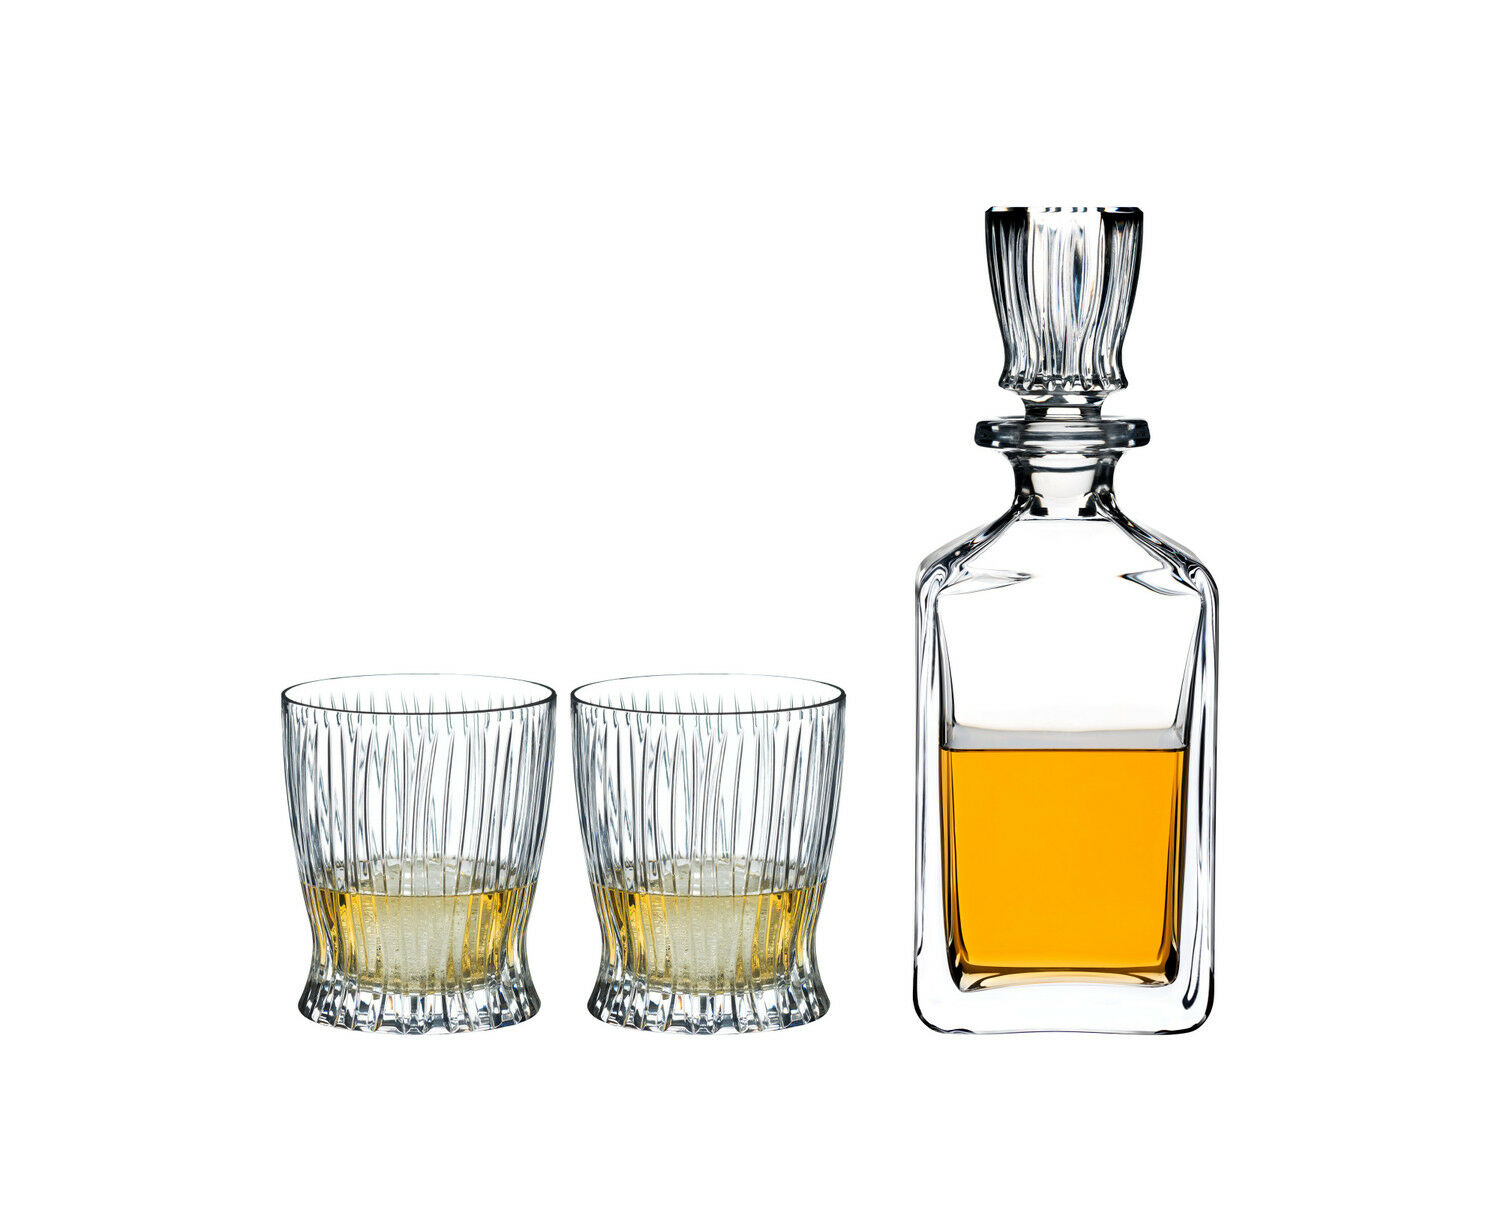 Riedel whiskyset Fire, 3-piezas, whisky decanter y 2 whisky vasos